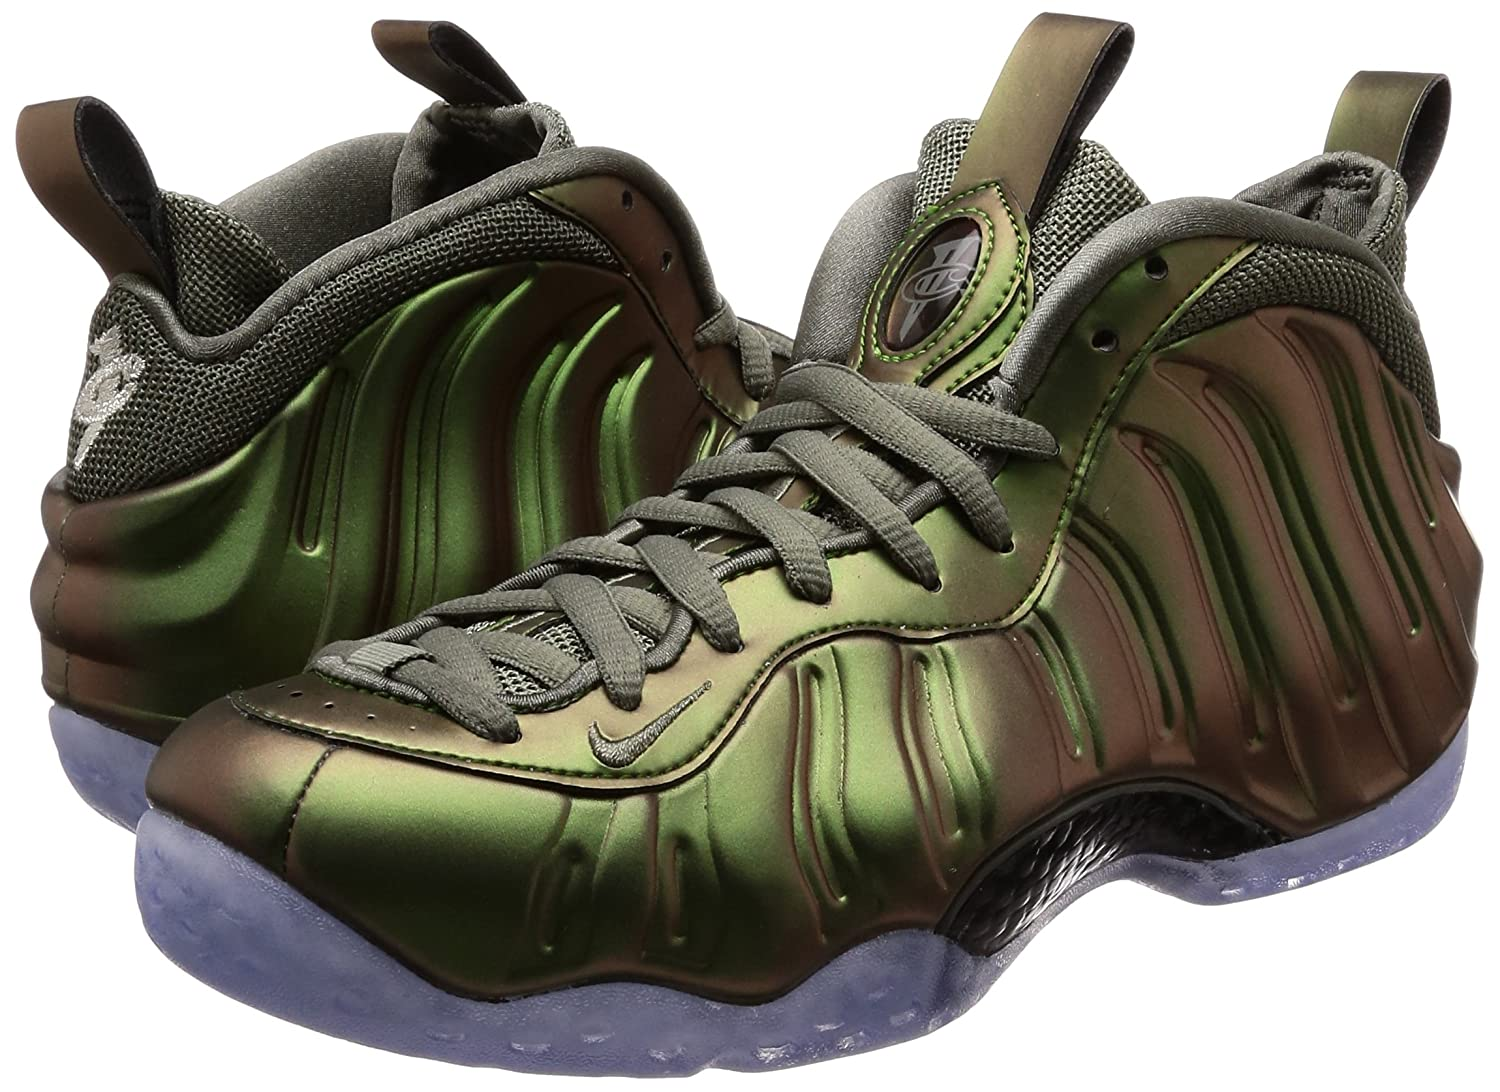 NIKE Women's Air Foamposite One Basketball Shoe B000G47BPM 12 M US|Dark Stucco-black